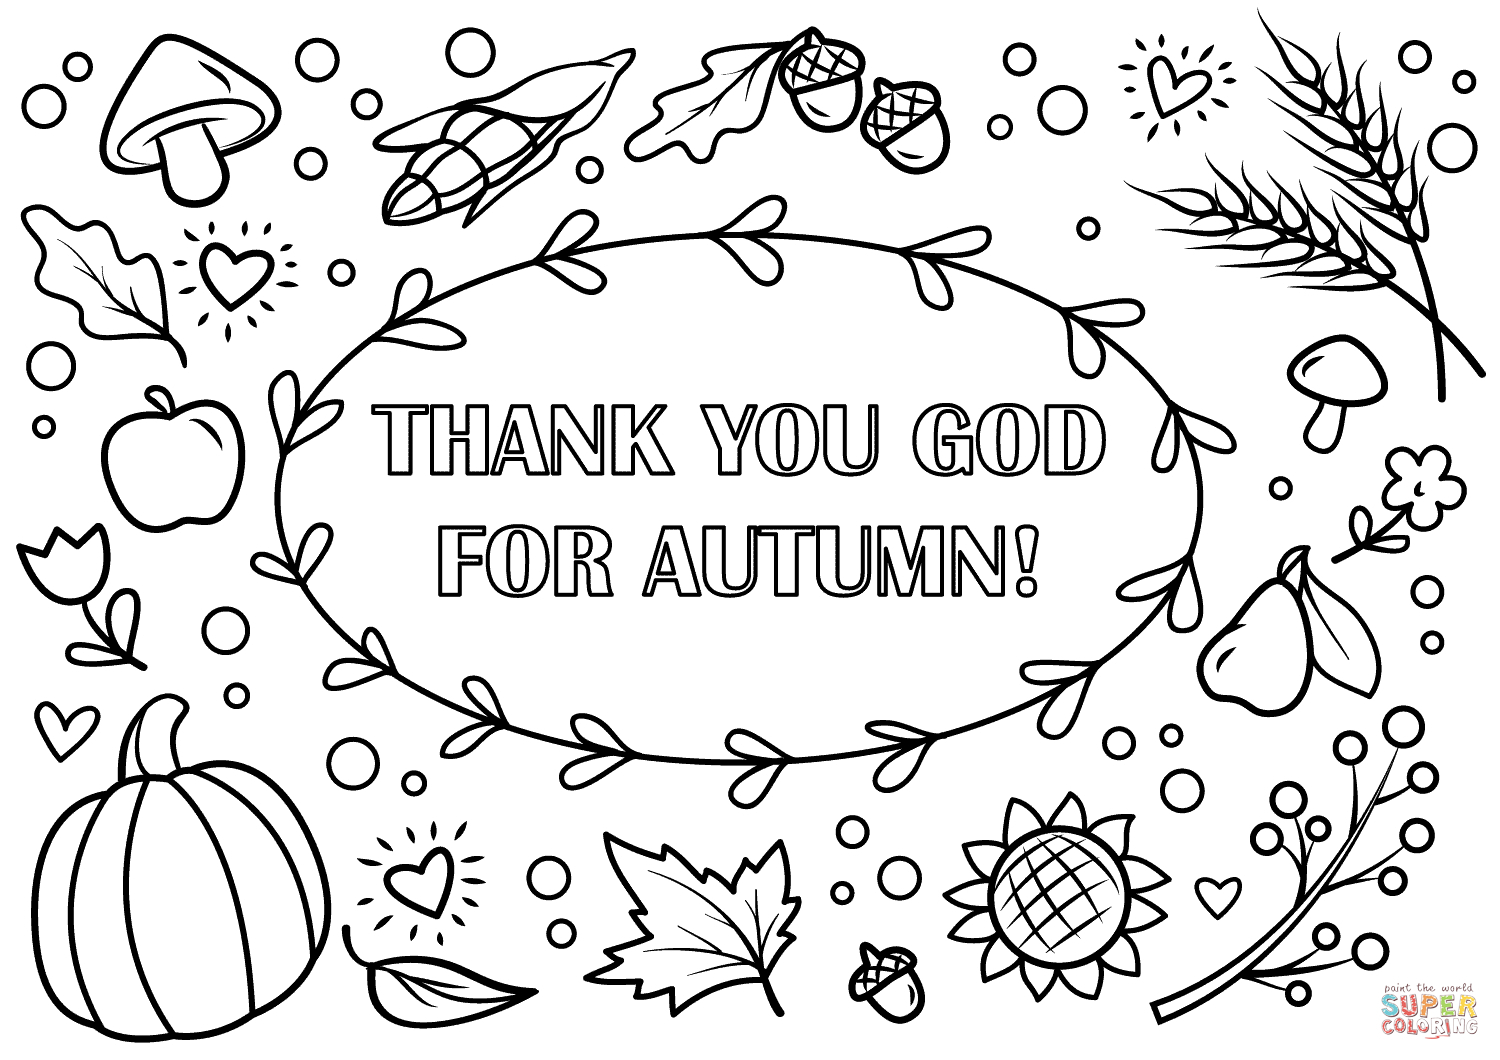 Fall Coloring Page Fall Coloring Pages Printable Thank You God For Autumn Coloring